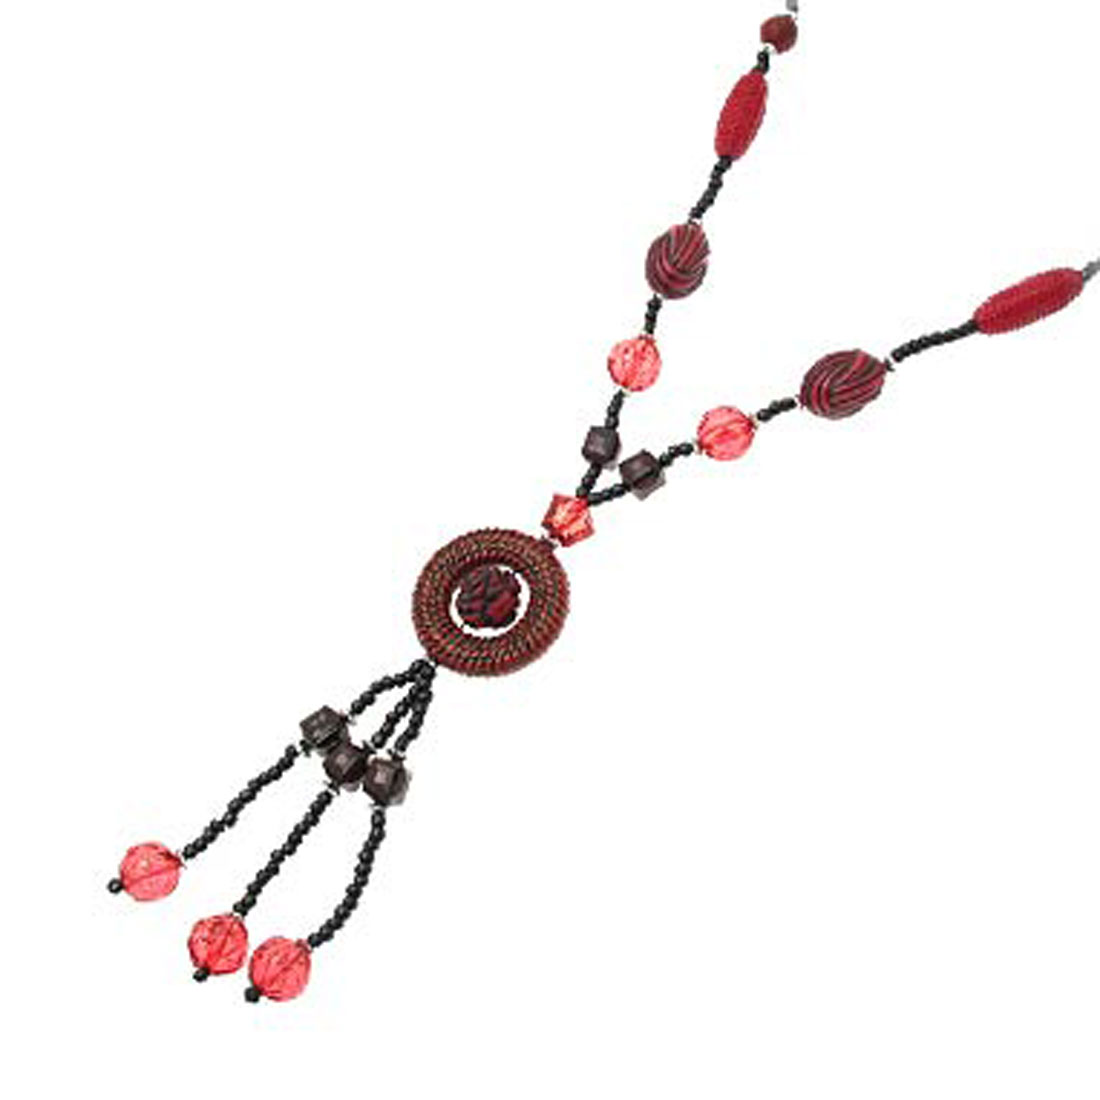 Fashion Jewelry Freshwater Black Pearls Necklace with Red Crystal